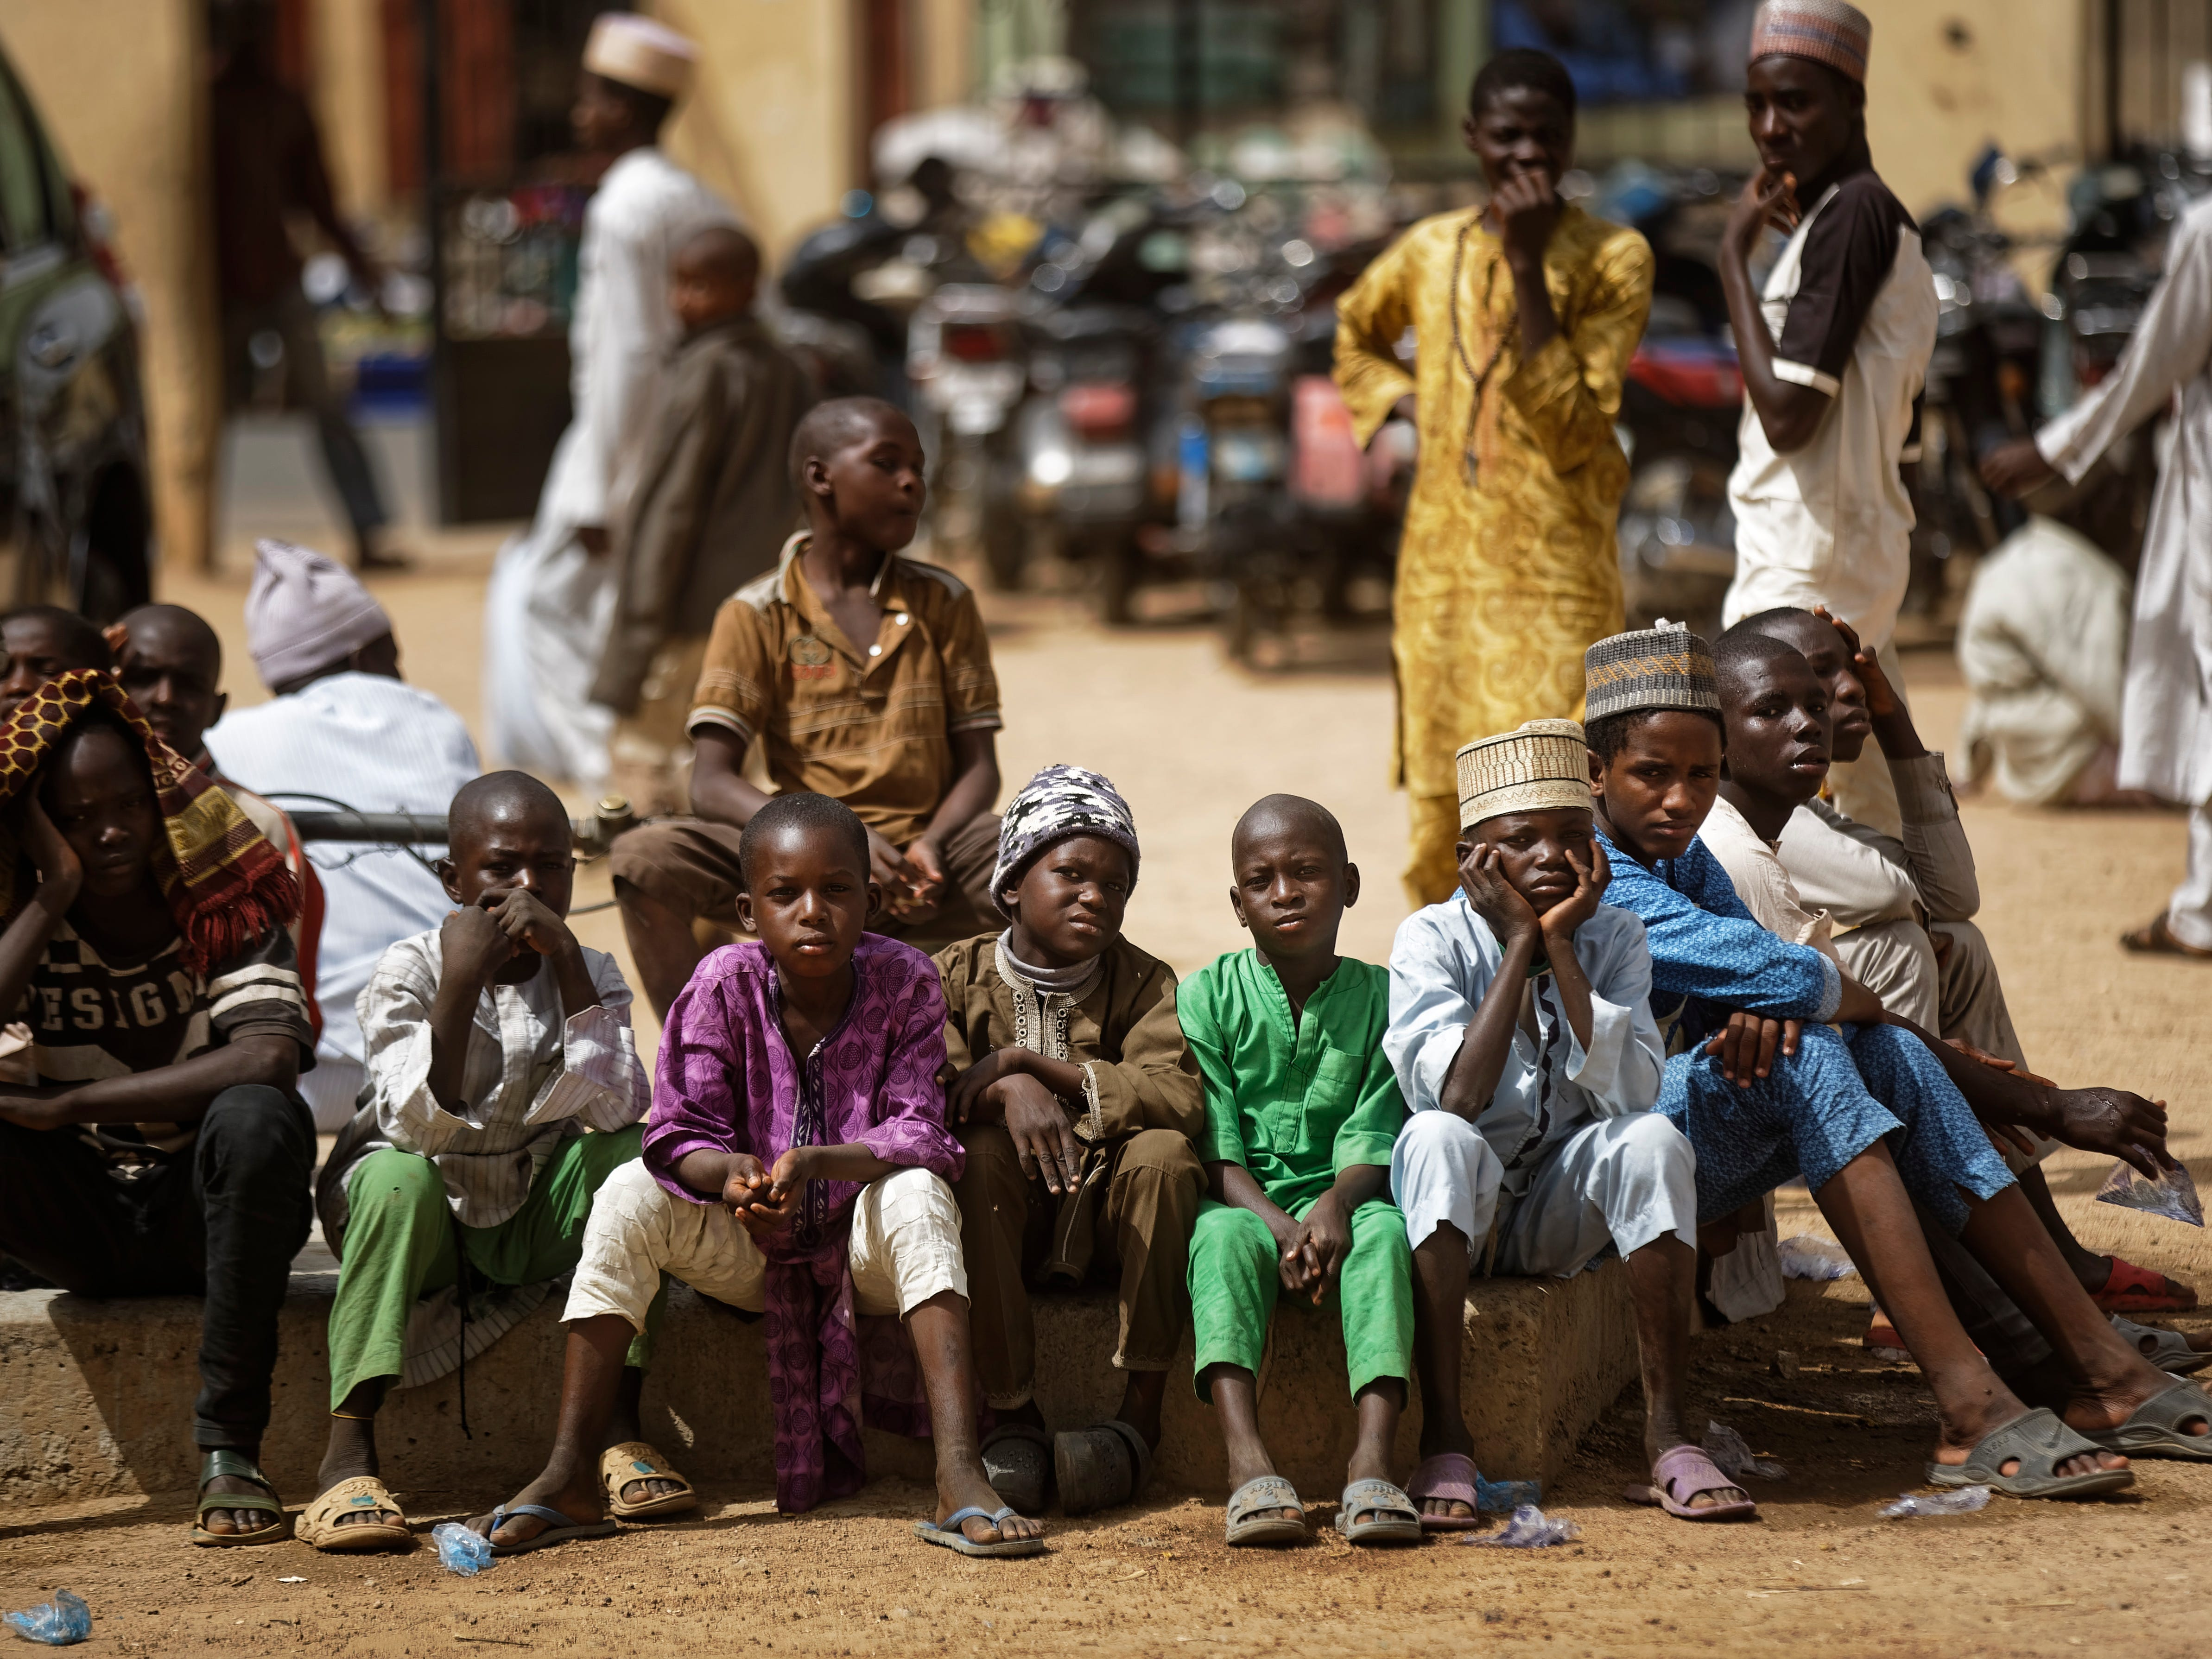 Young Muslim boys wait for traditional Friday prayers to begin at a mosque near to the Emir's palace a day prior to the start of the elections, in Kano, northern Nigeria, Friday, Feb. 15, 2019. Nigeria is due to hold general elections on Saturday, pitting incumbent President Muhammadu Buhari against leading opposition presidential candidate Atiku Abubakar.